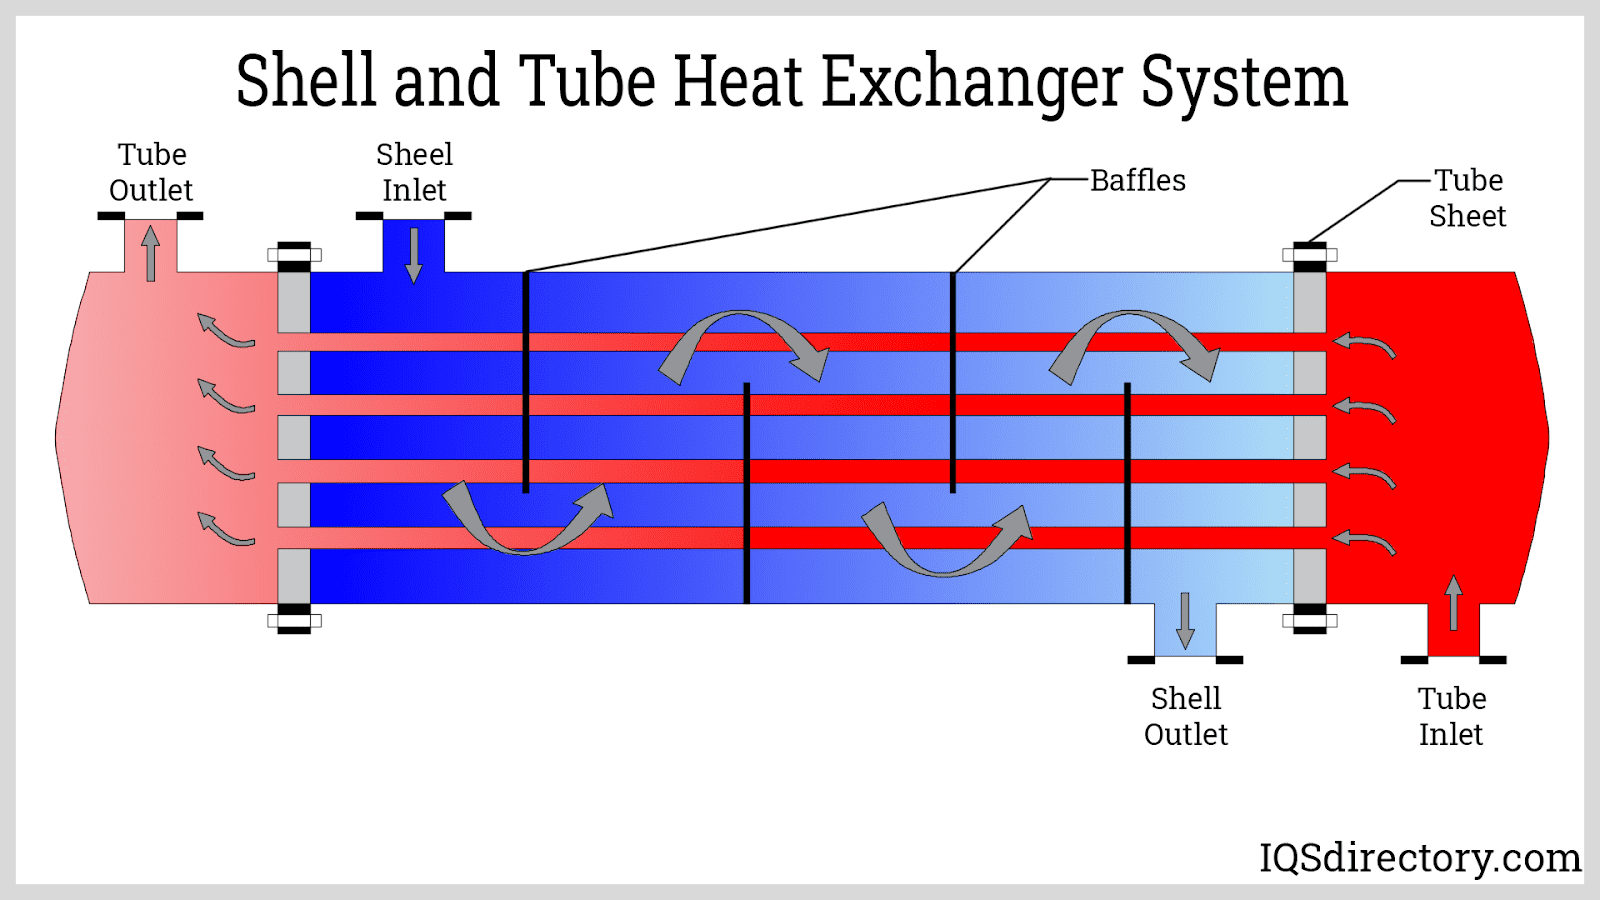 Shell and Tube Heat Exchanger System